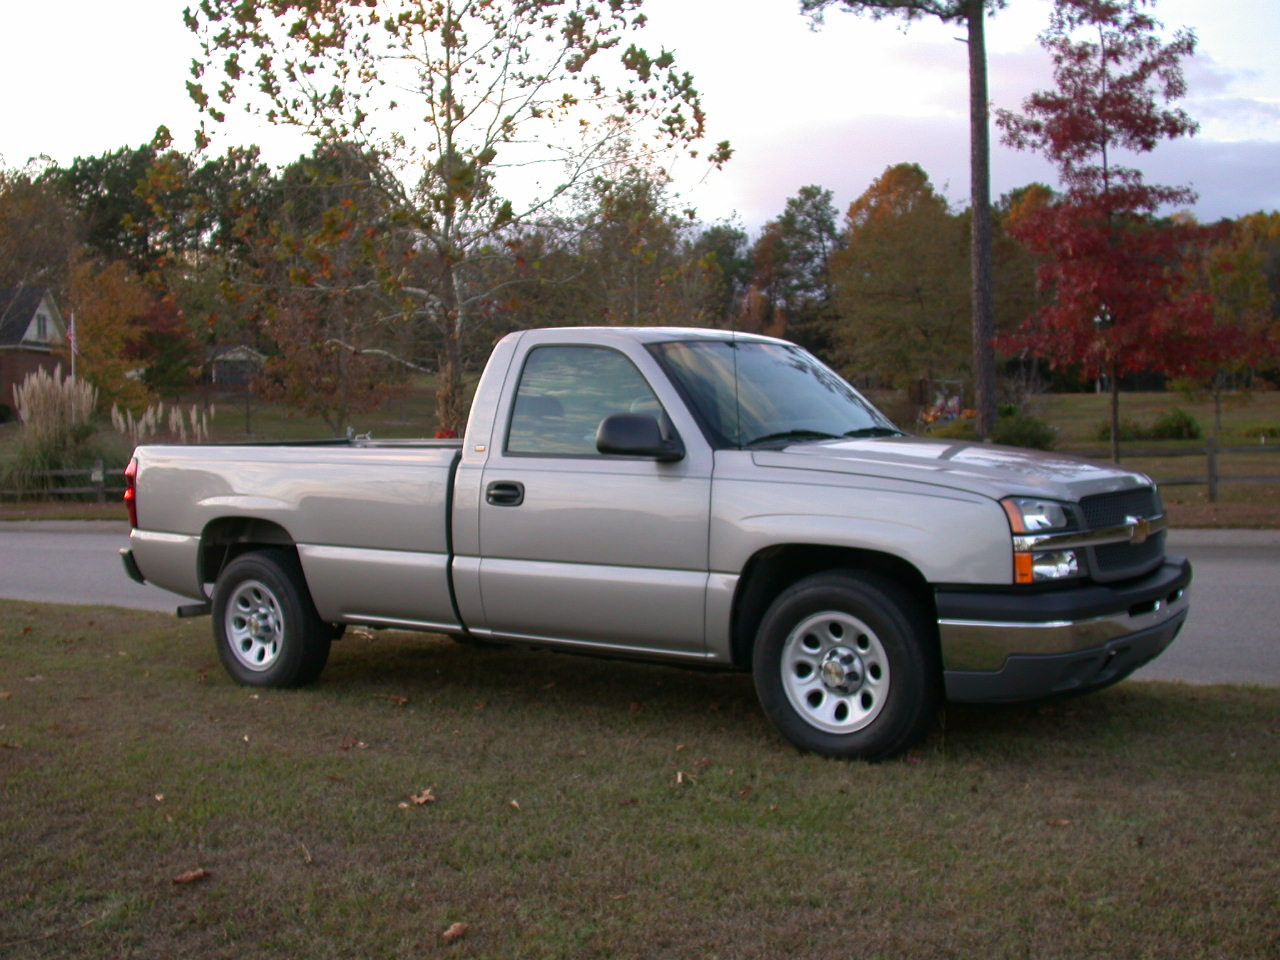 Image Seo All 2 Chevy Silverado Post 22 1961 Truck Lifted